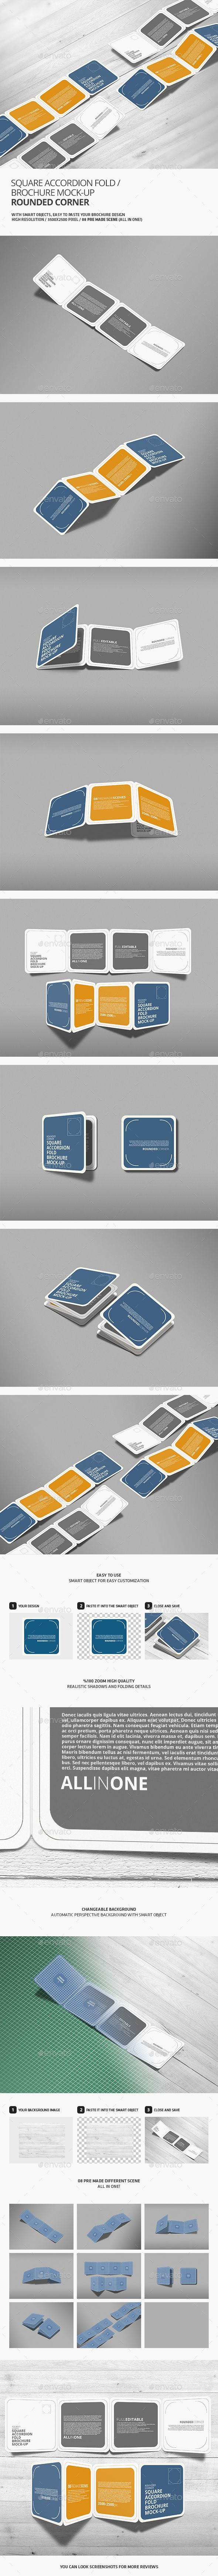 Square Accordion Fold Brochure MockUp - Rounded Corner